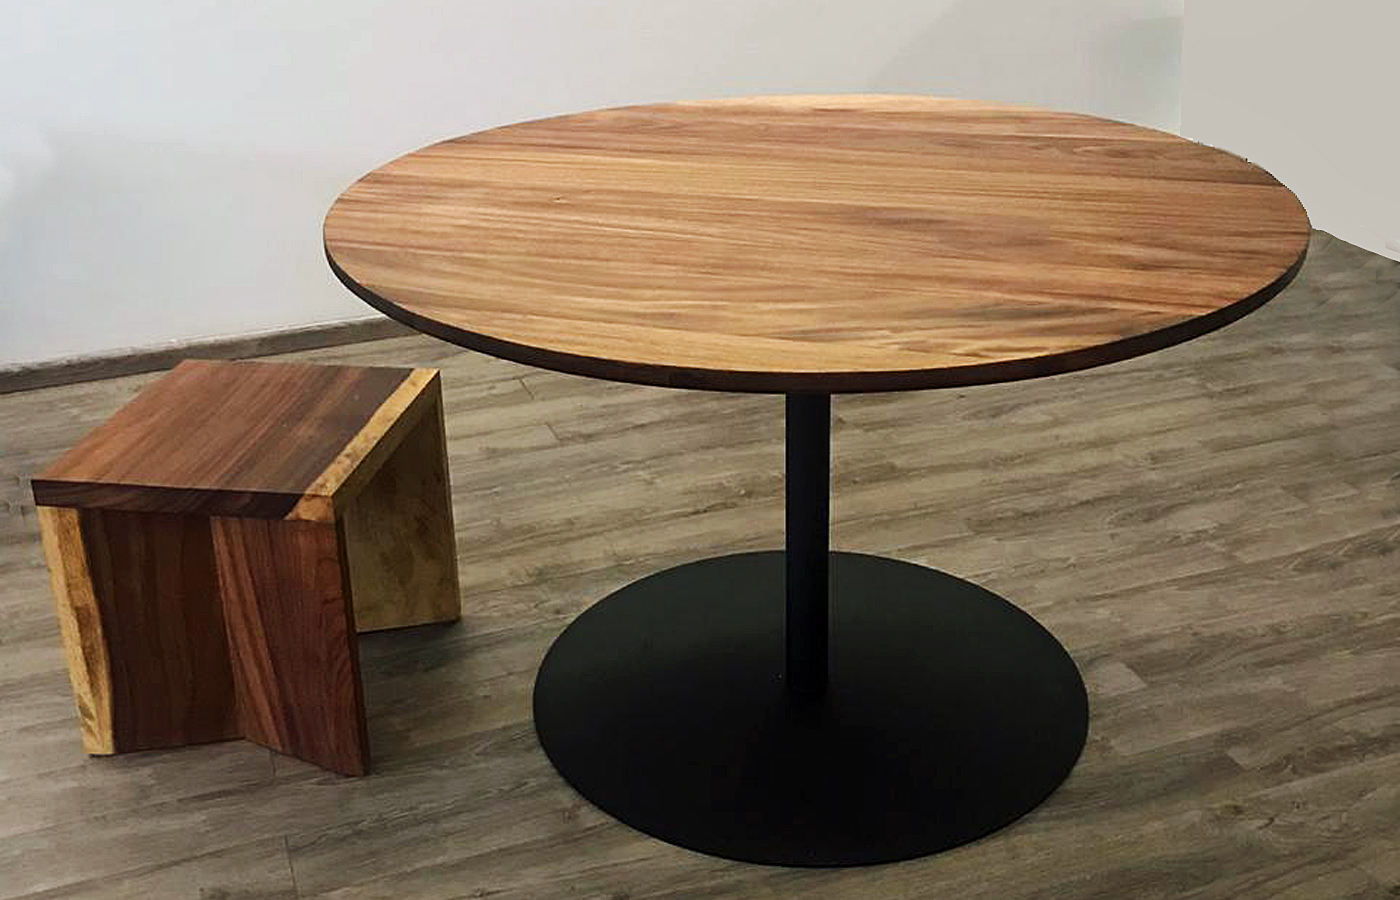 Wood Round Table.Parota Wood Tables Custom Modern Design Made In Mexico